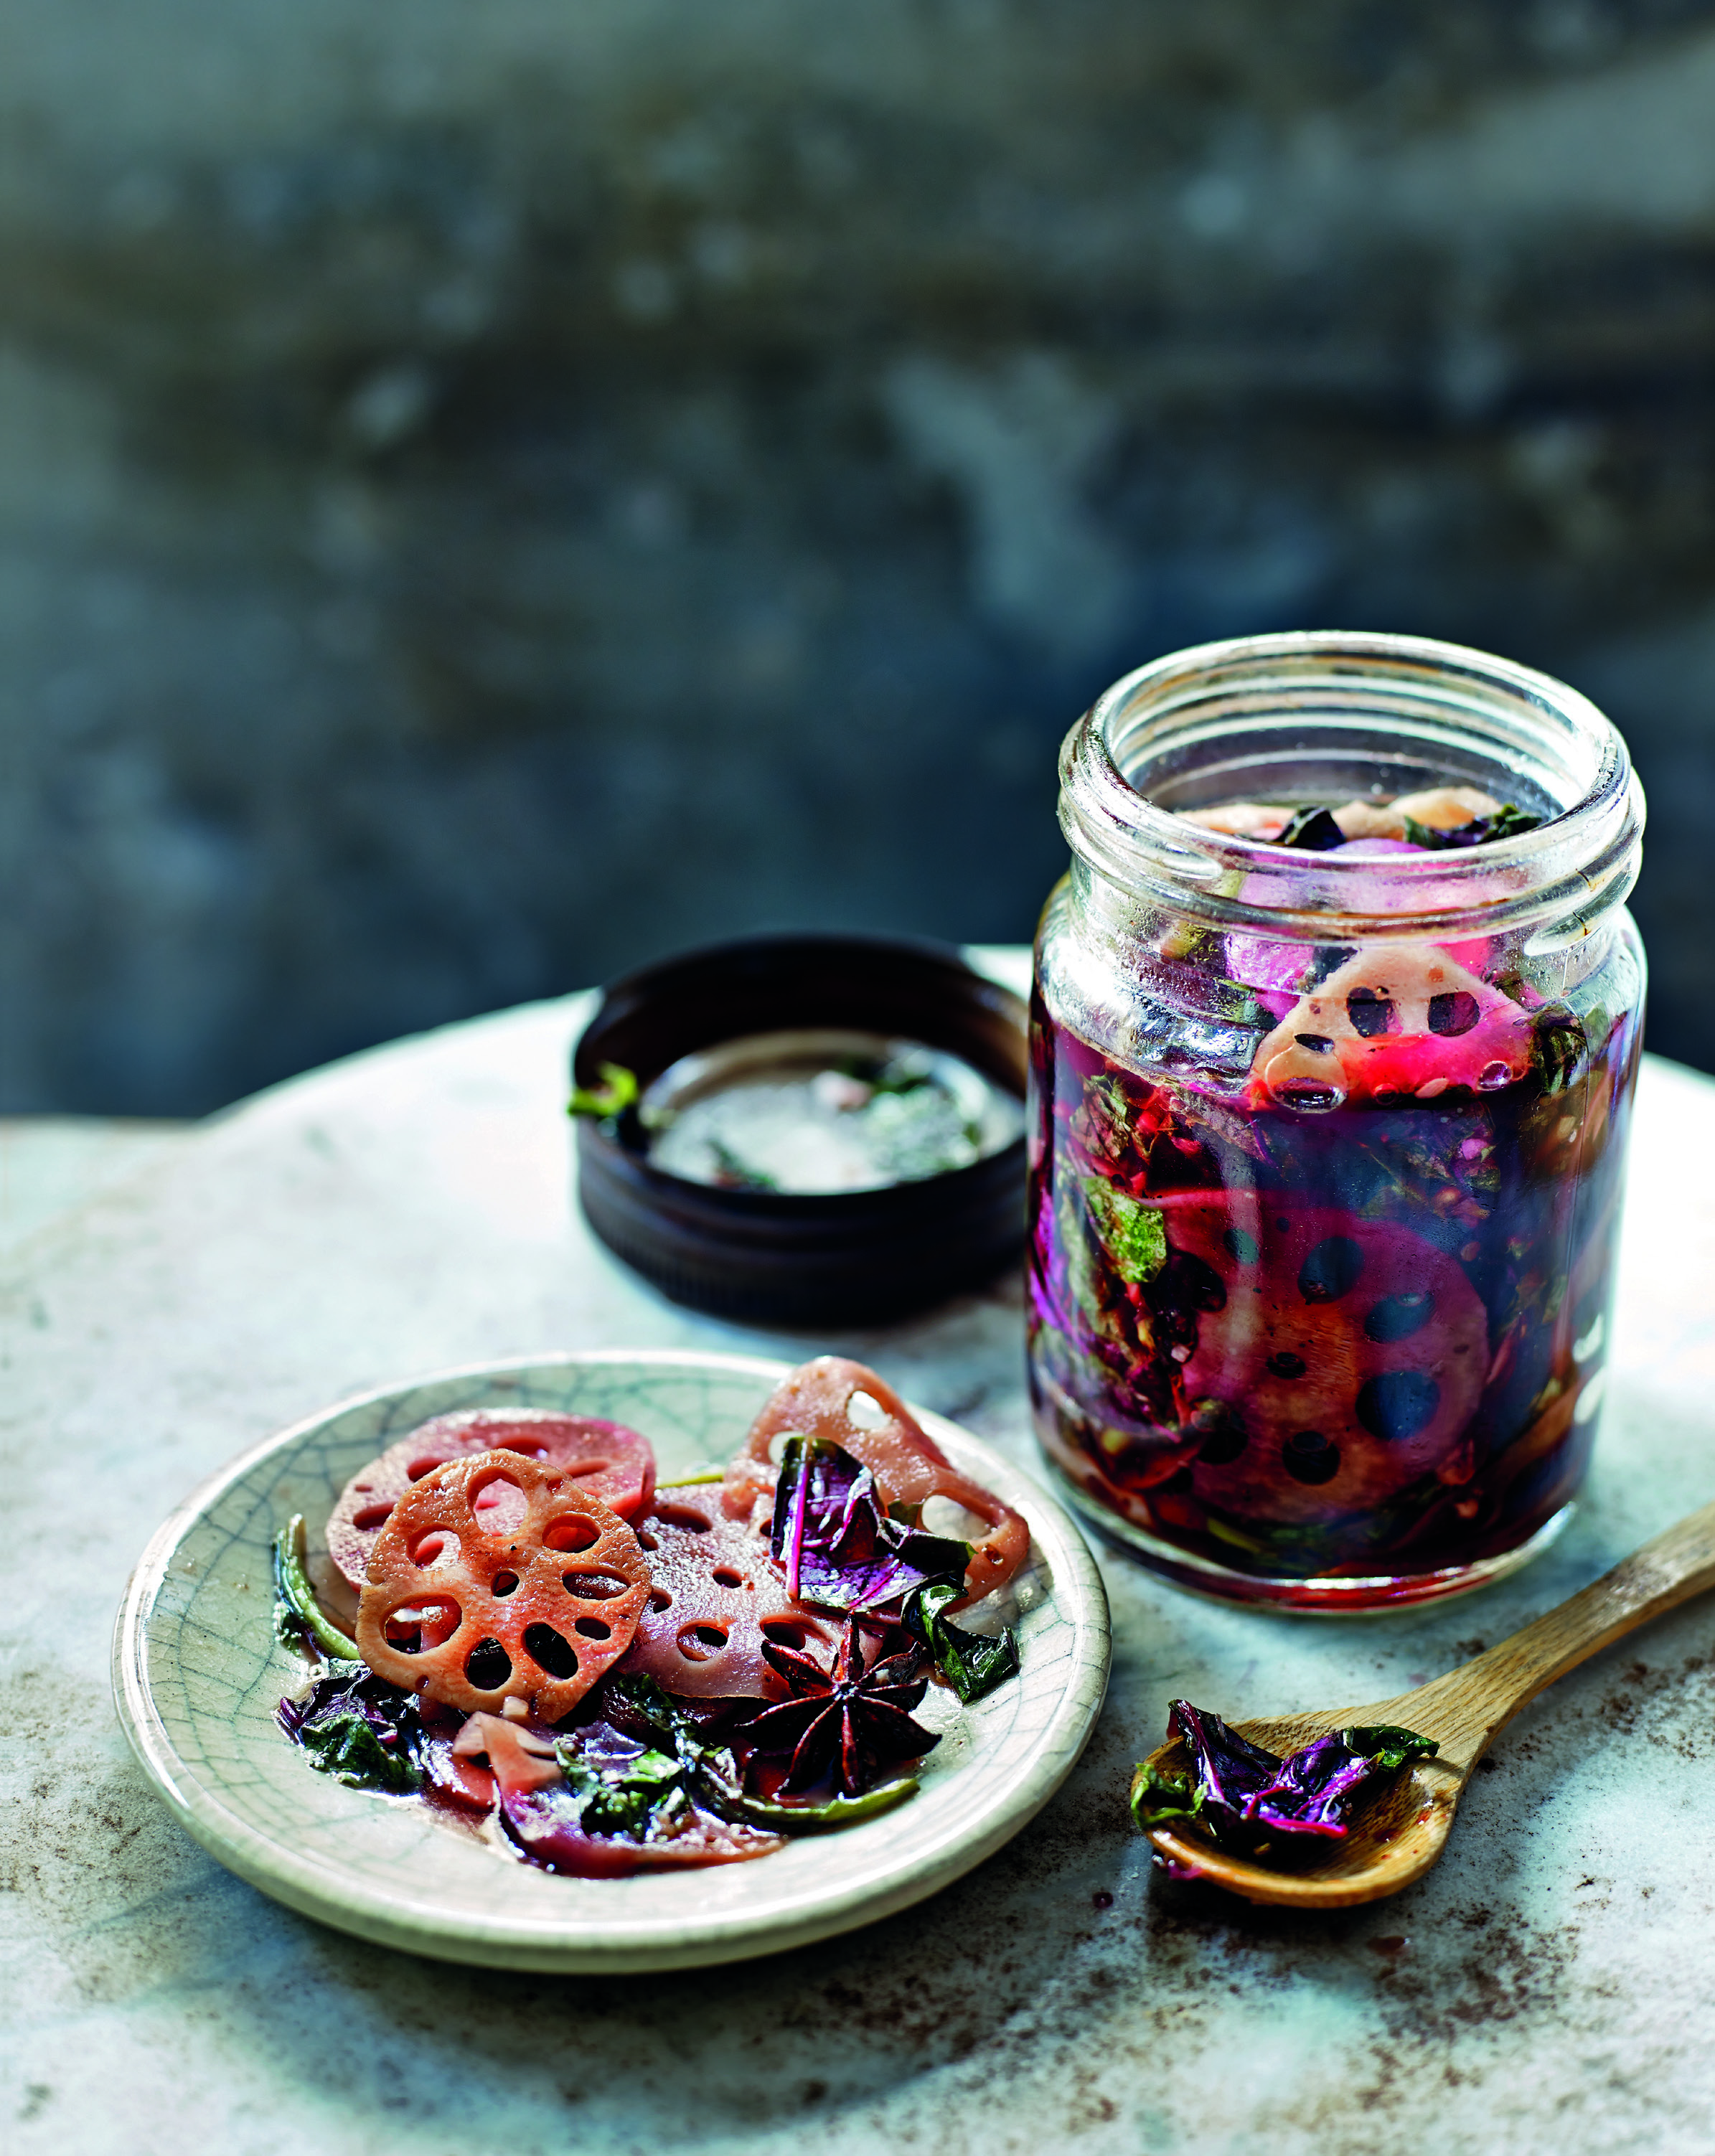 Pickled lotus root and spinach